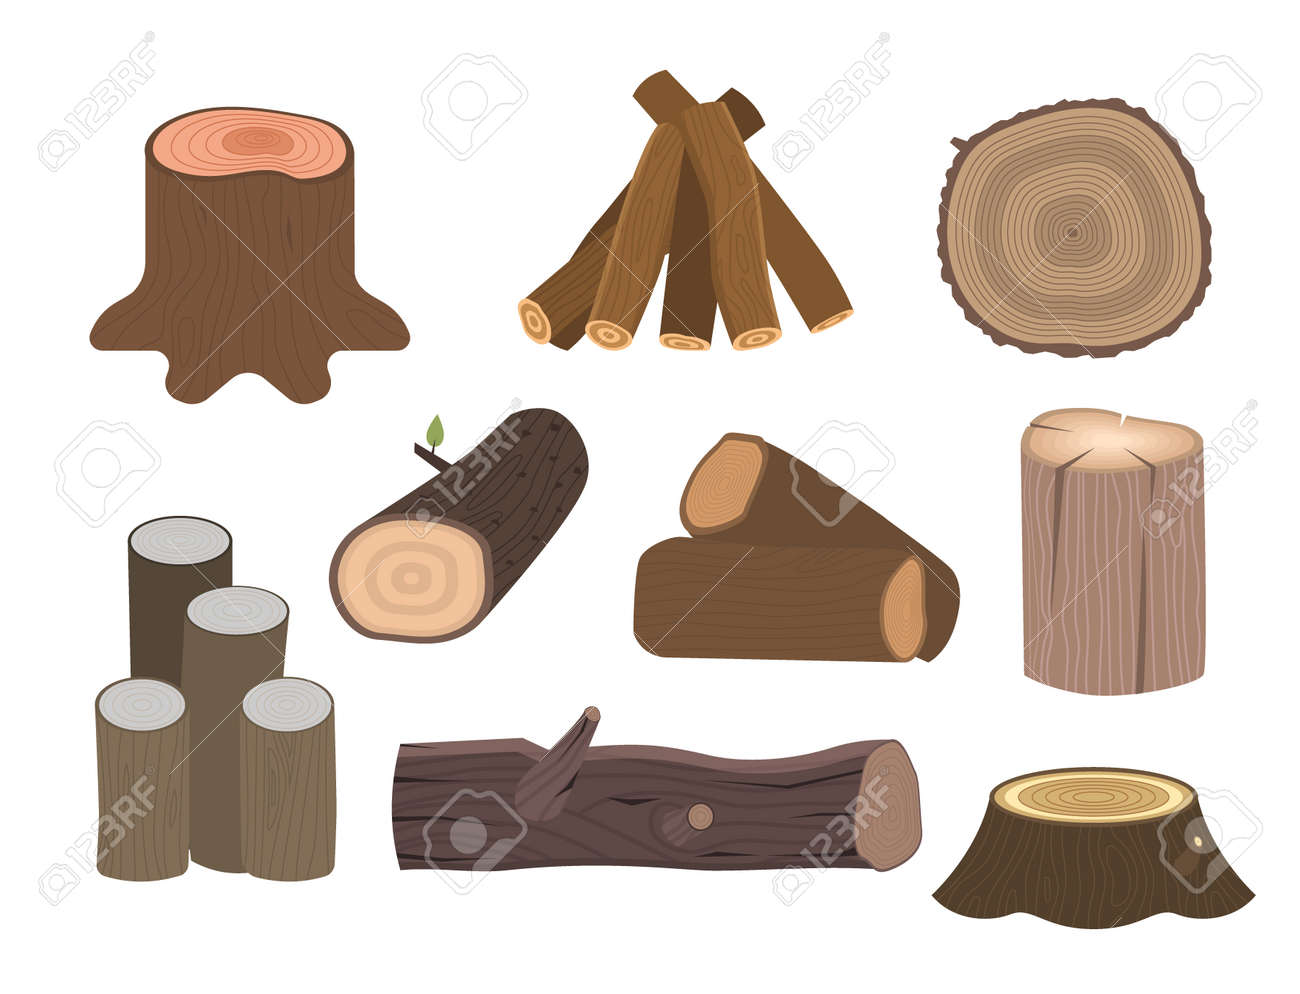 Stacked wood pine timber for construction building cut stump lumber tree bark materials vector illustration. - 90743841